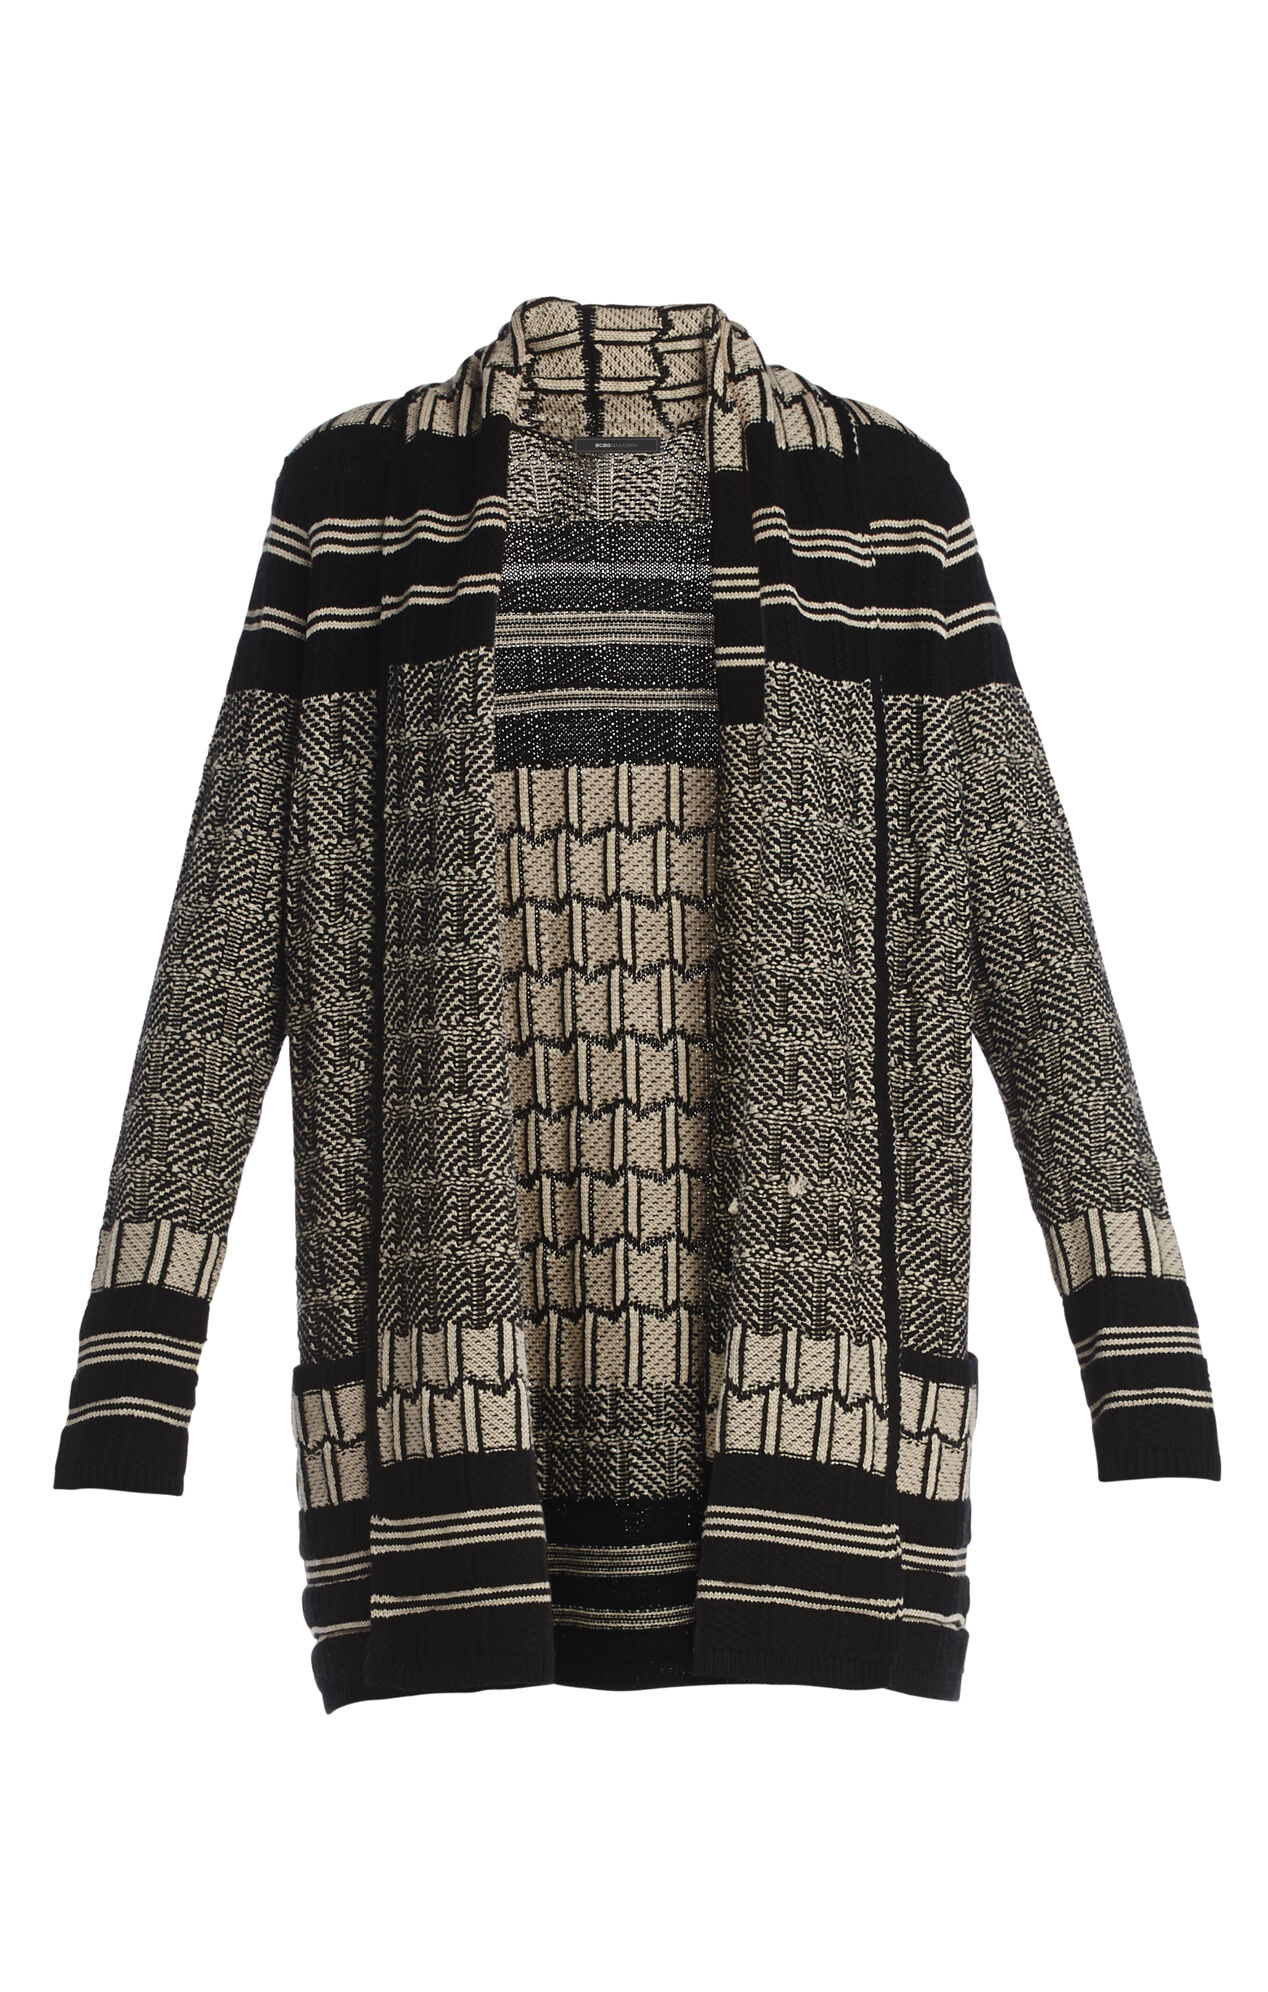 Shadia Textured Jacquard Cardigan